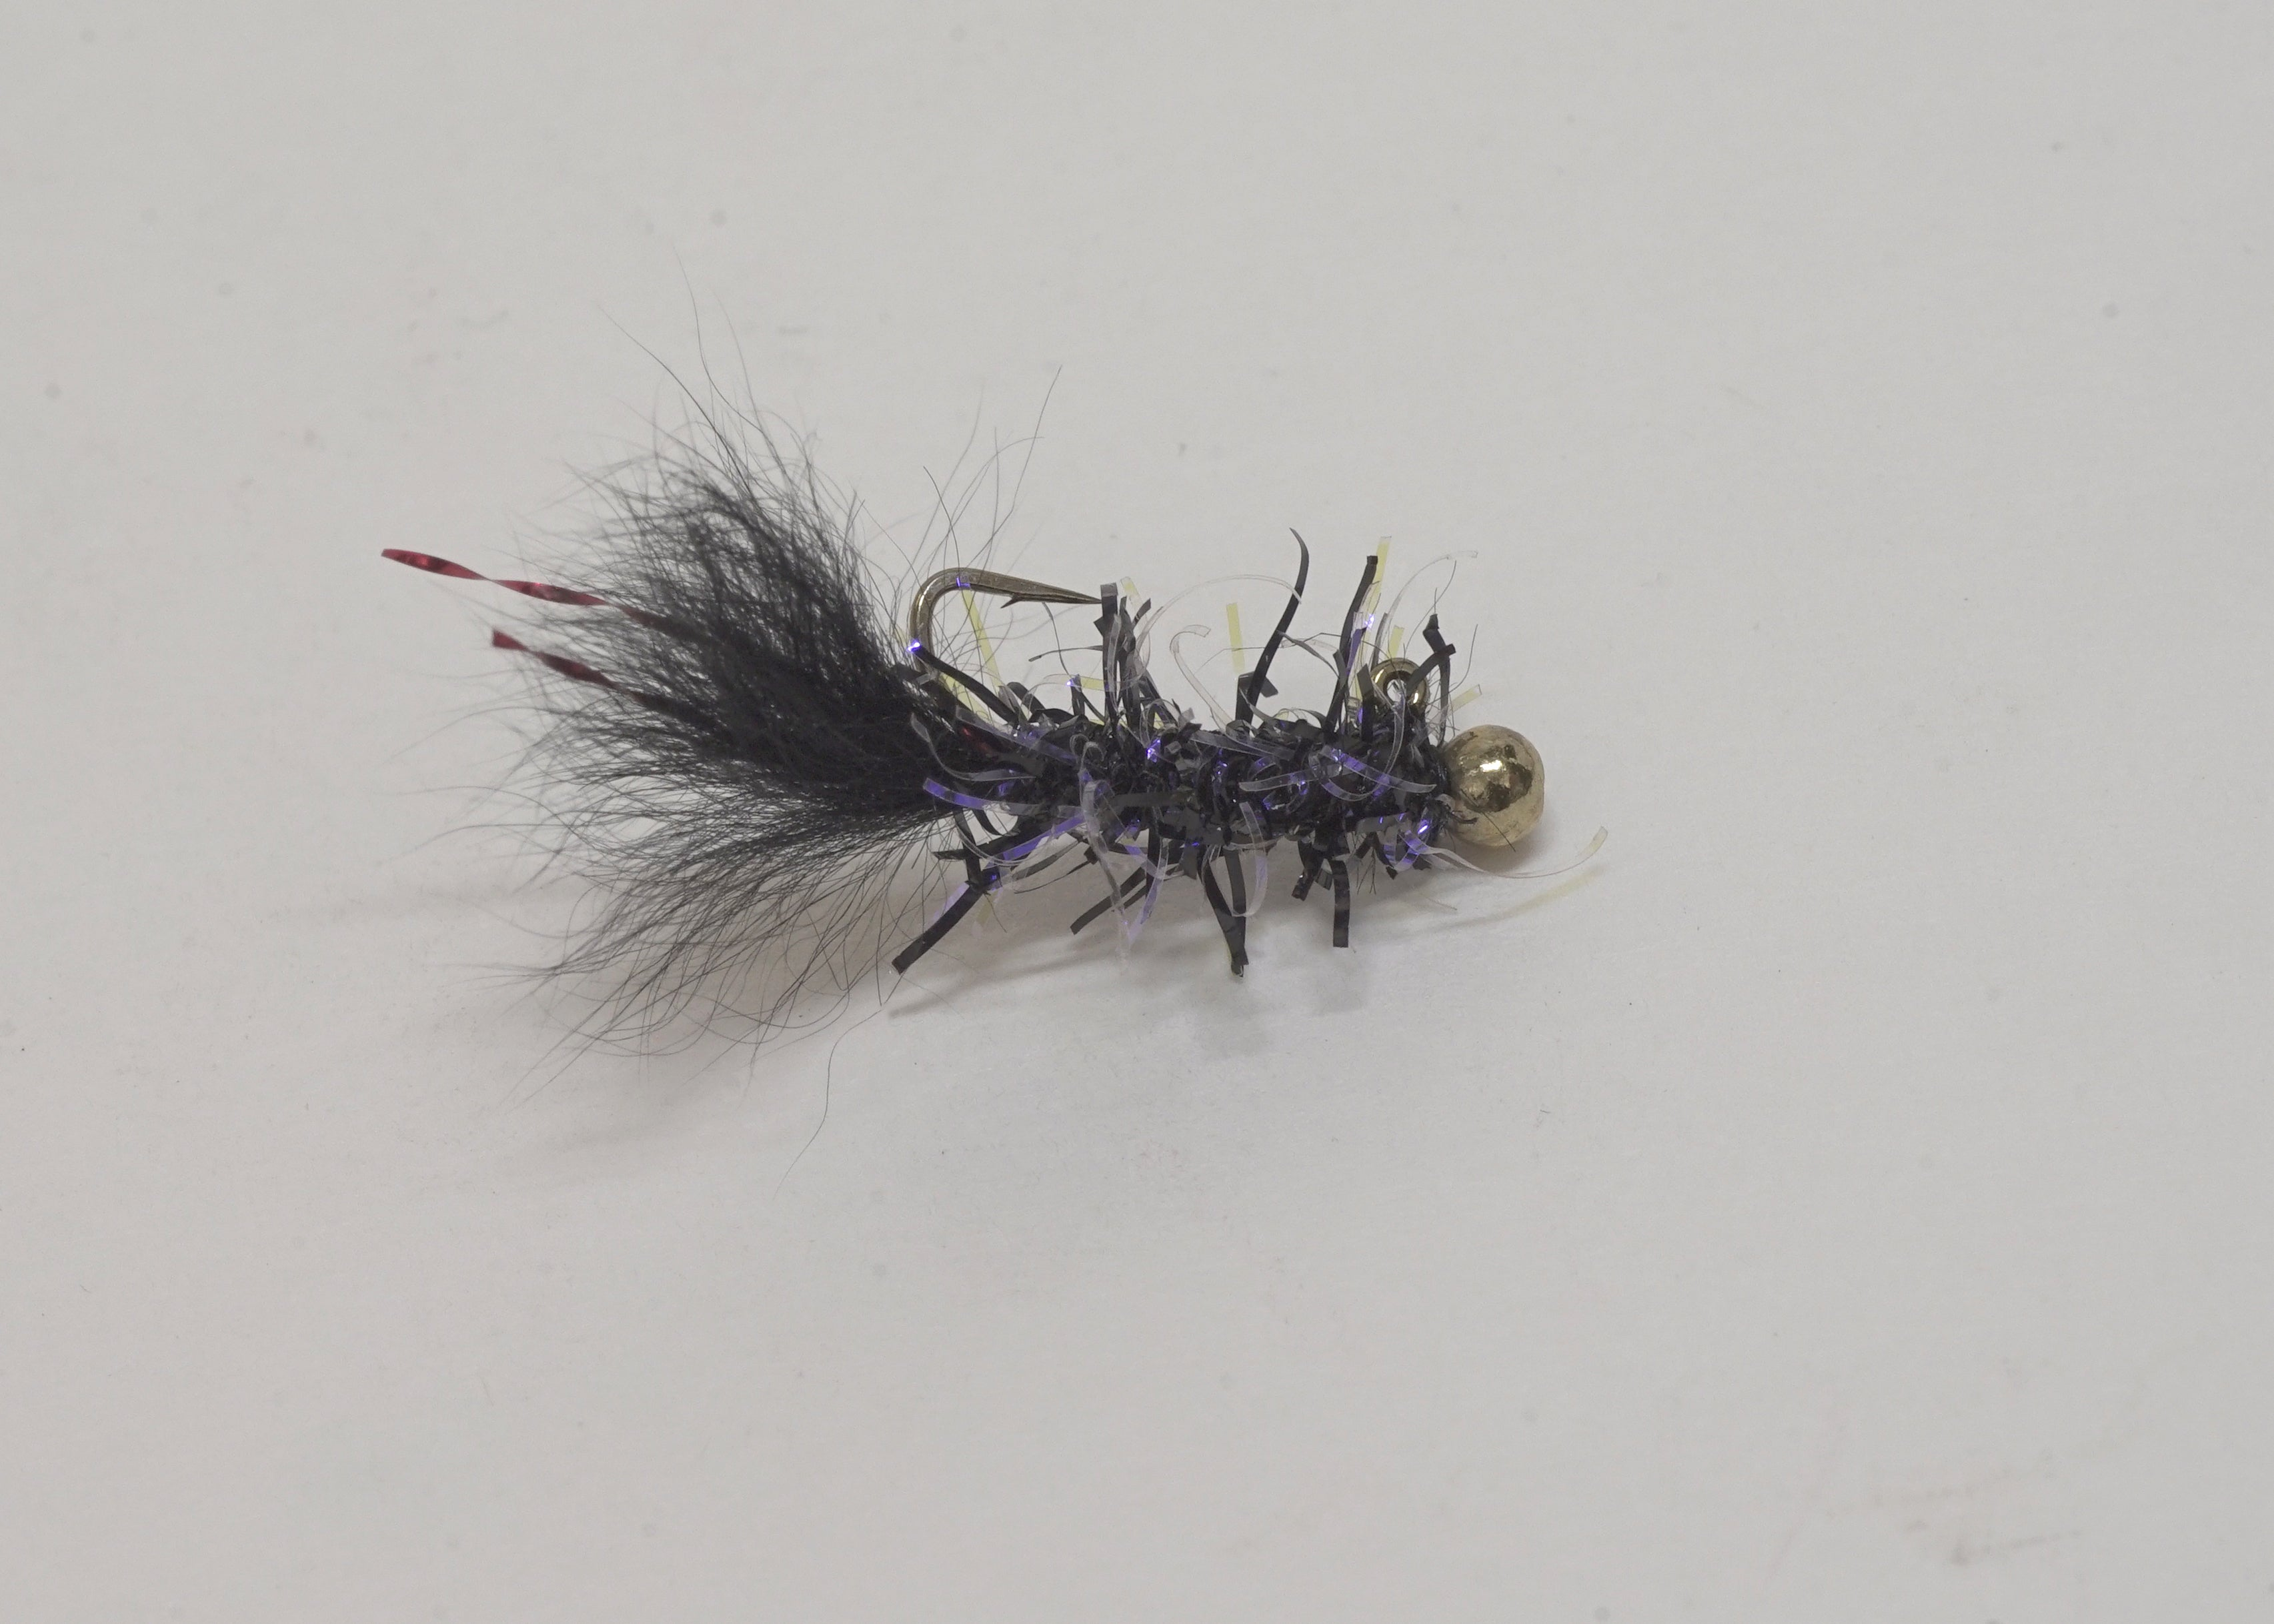 Phil Rowley's B.B. Micro Leech-Black